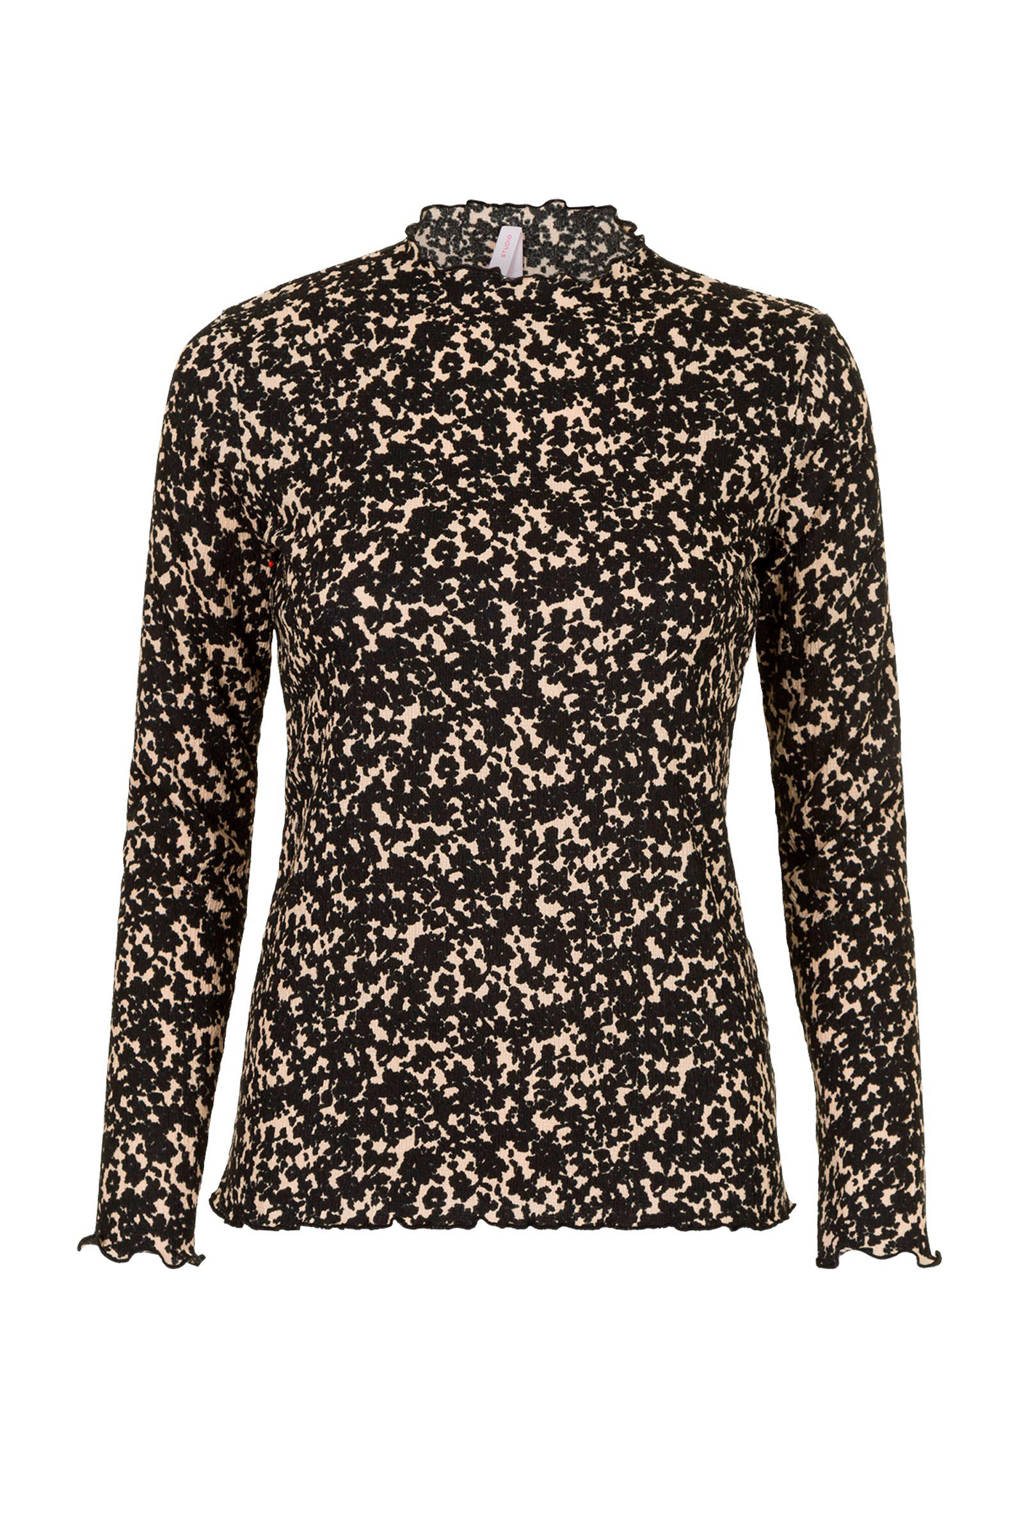 Miss Etam Regulier longsleeve met all over print zwart, Zwart